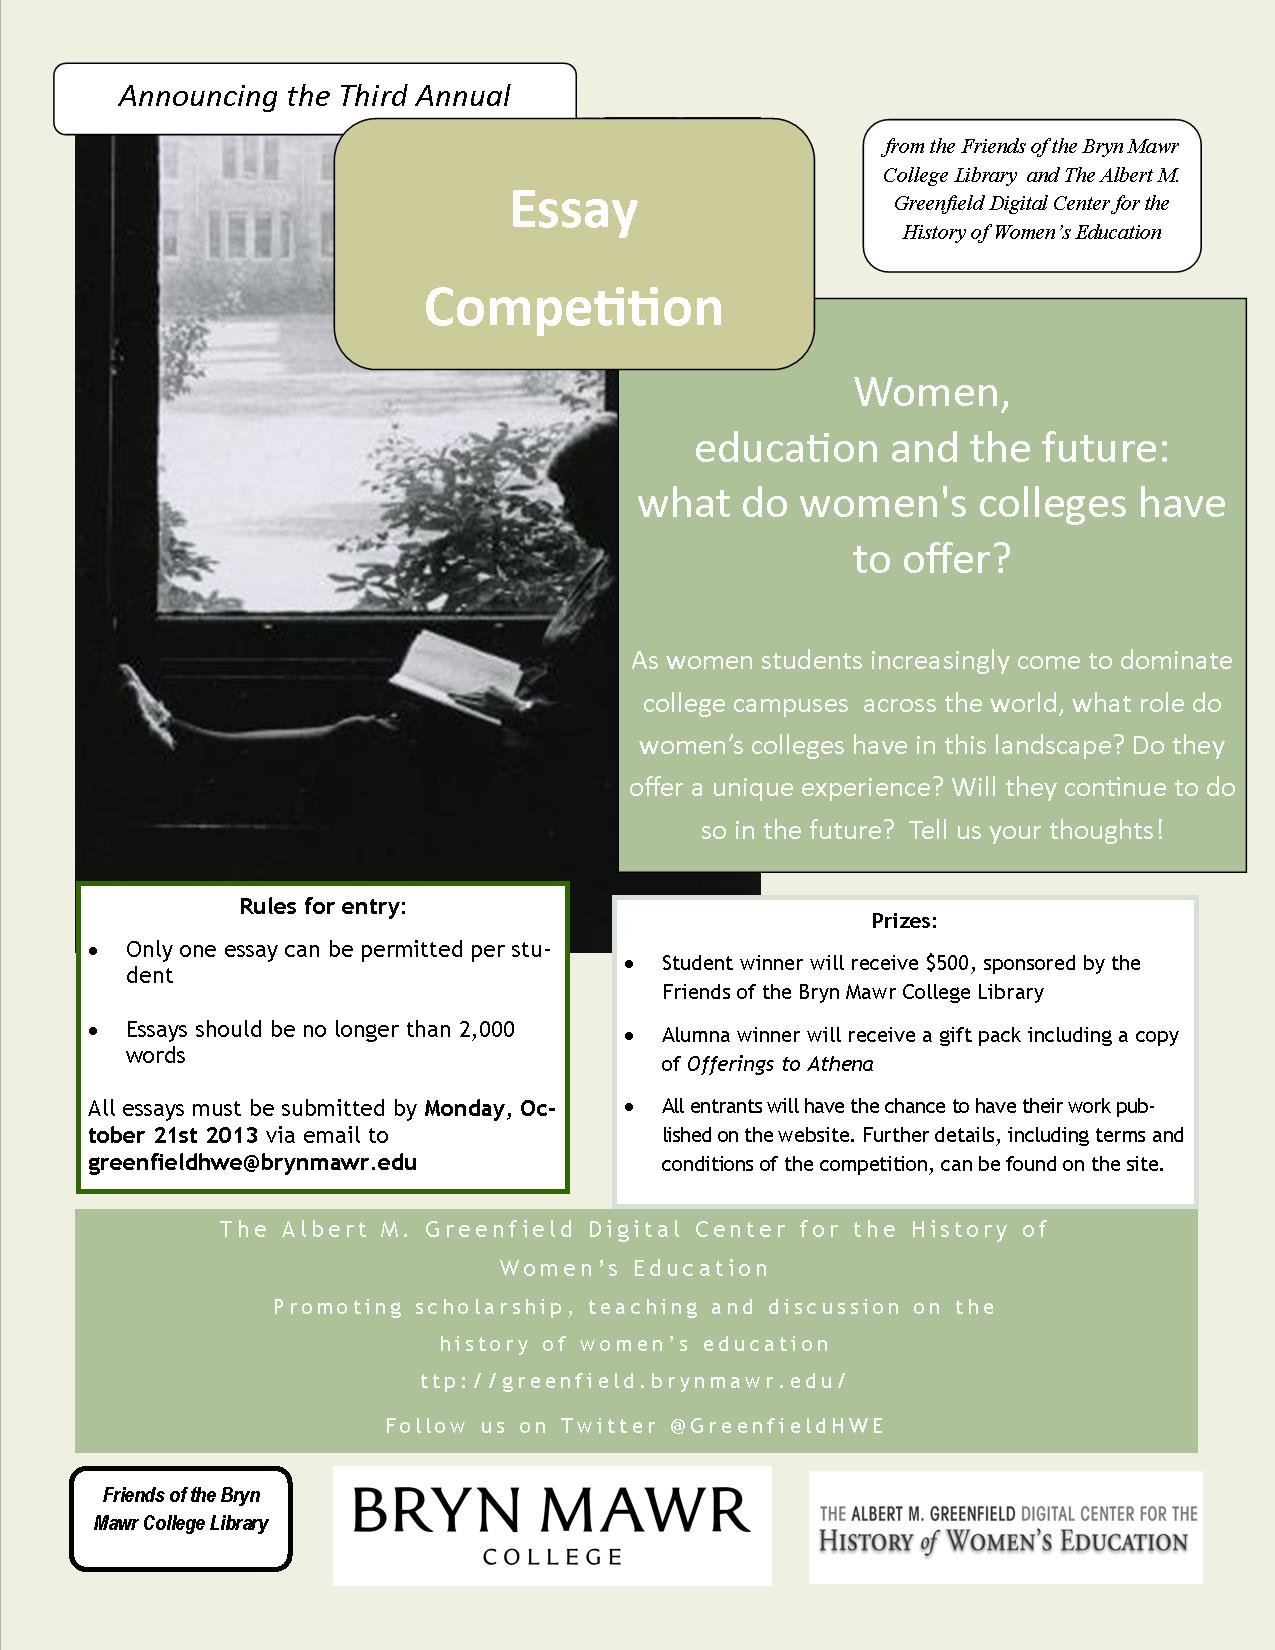 essay on women role in society essay on women should women have  essay competition educating women essay competition poster 2013